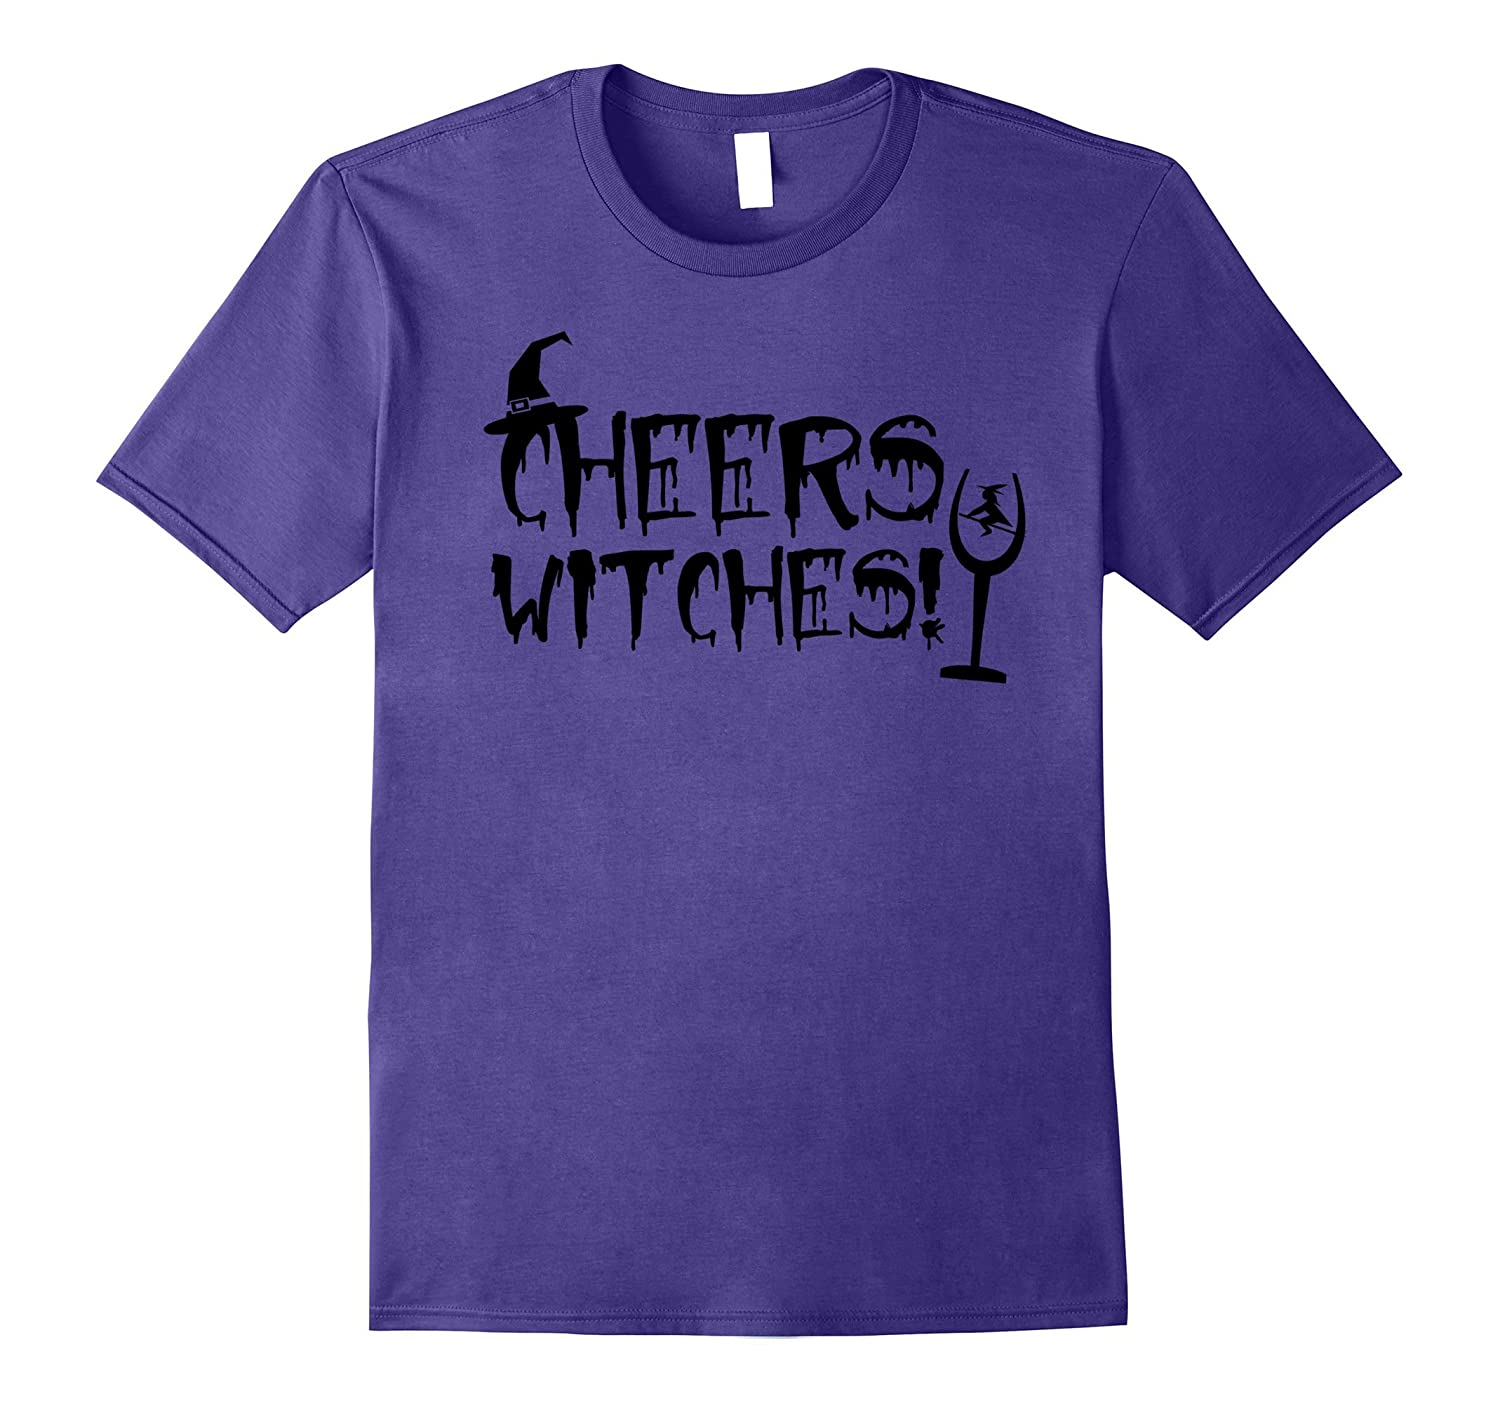 Cheers witches T-shirt wine beer drinking fun halloween-FL